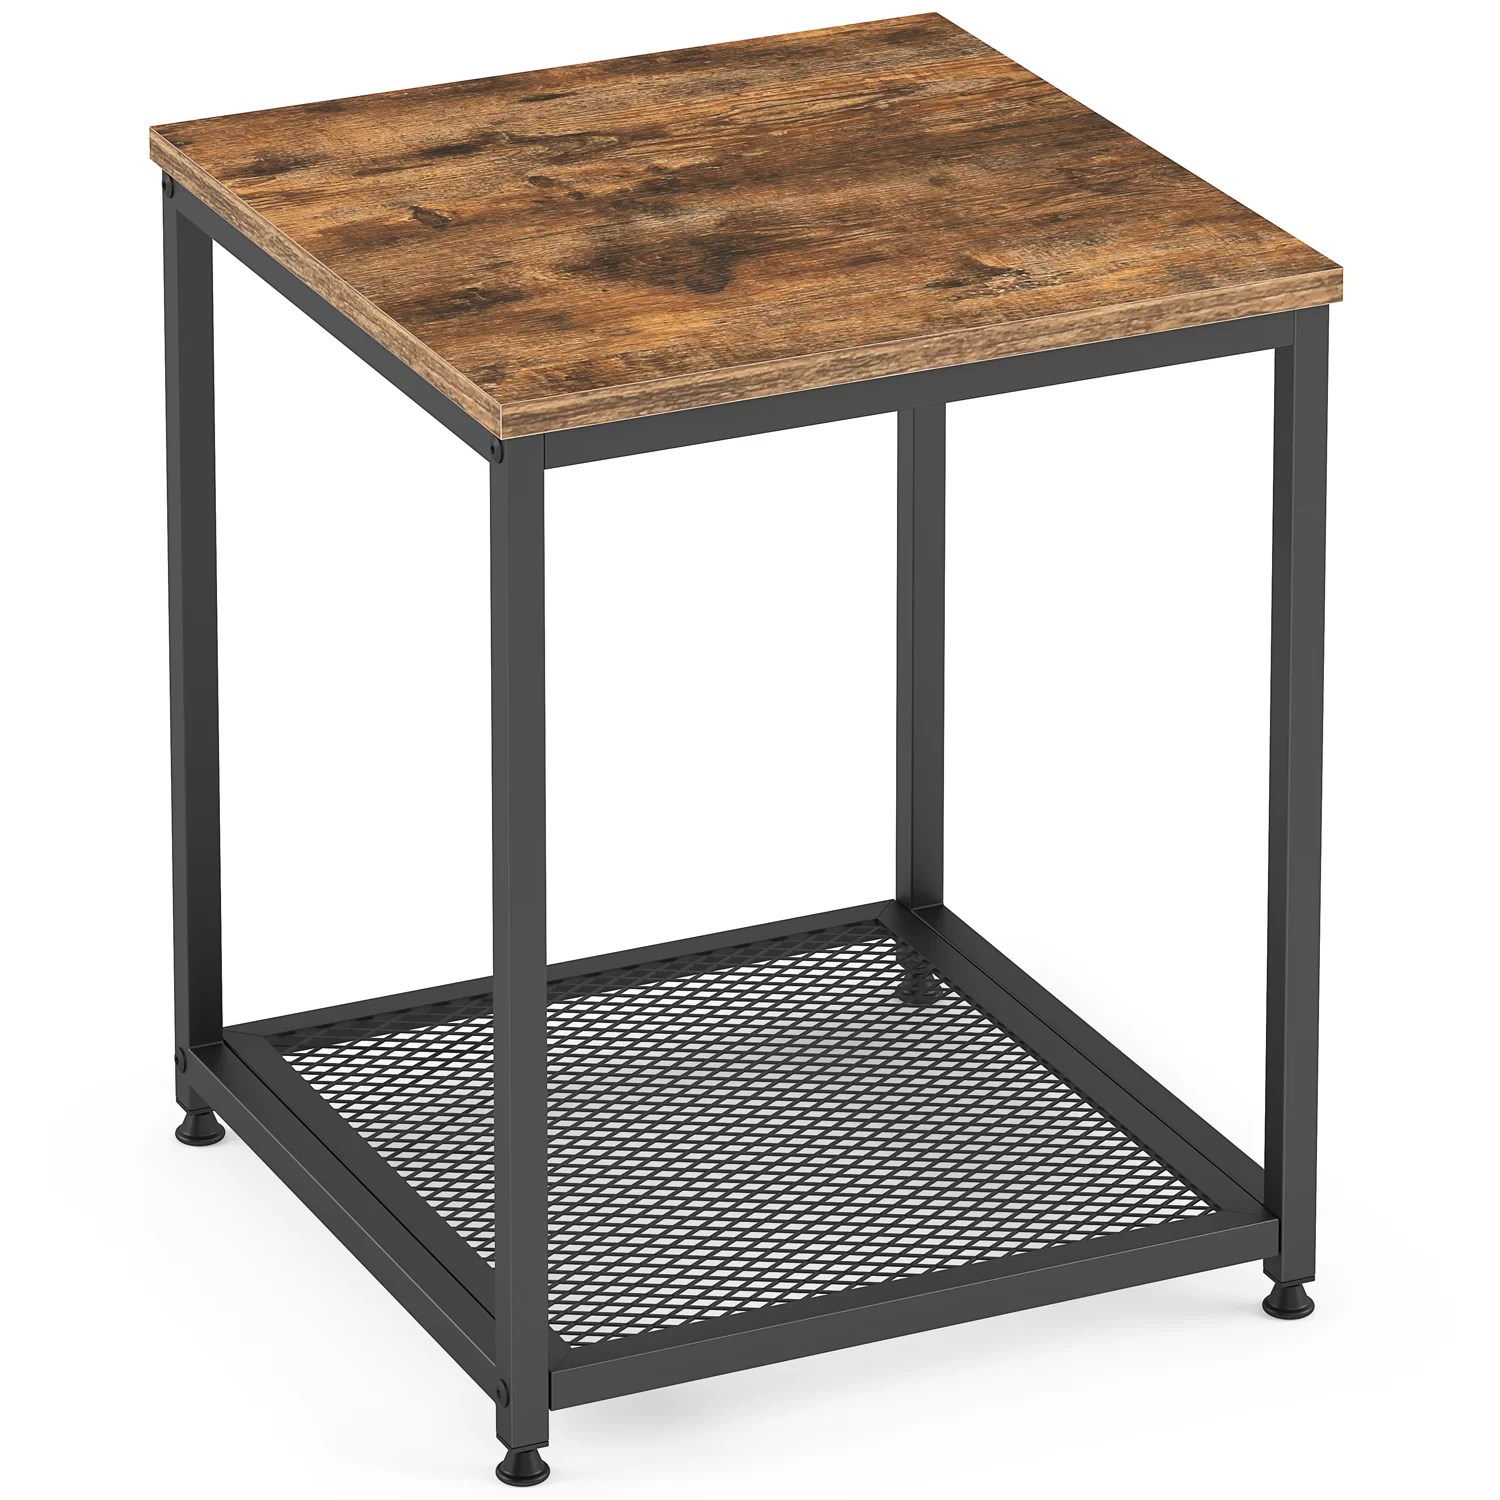 industrial end table 2 tier with storage shelf rustic brown